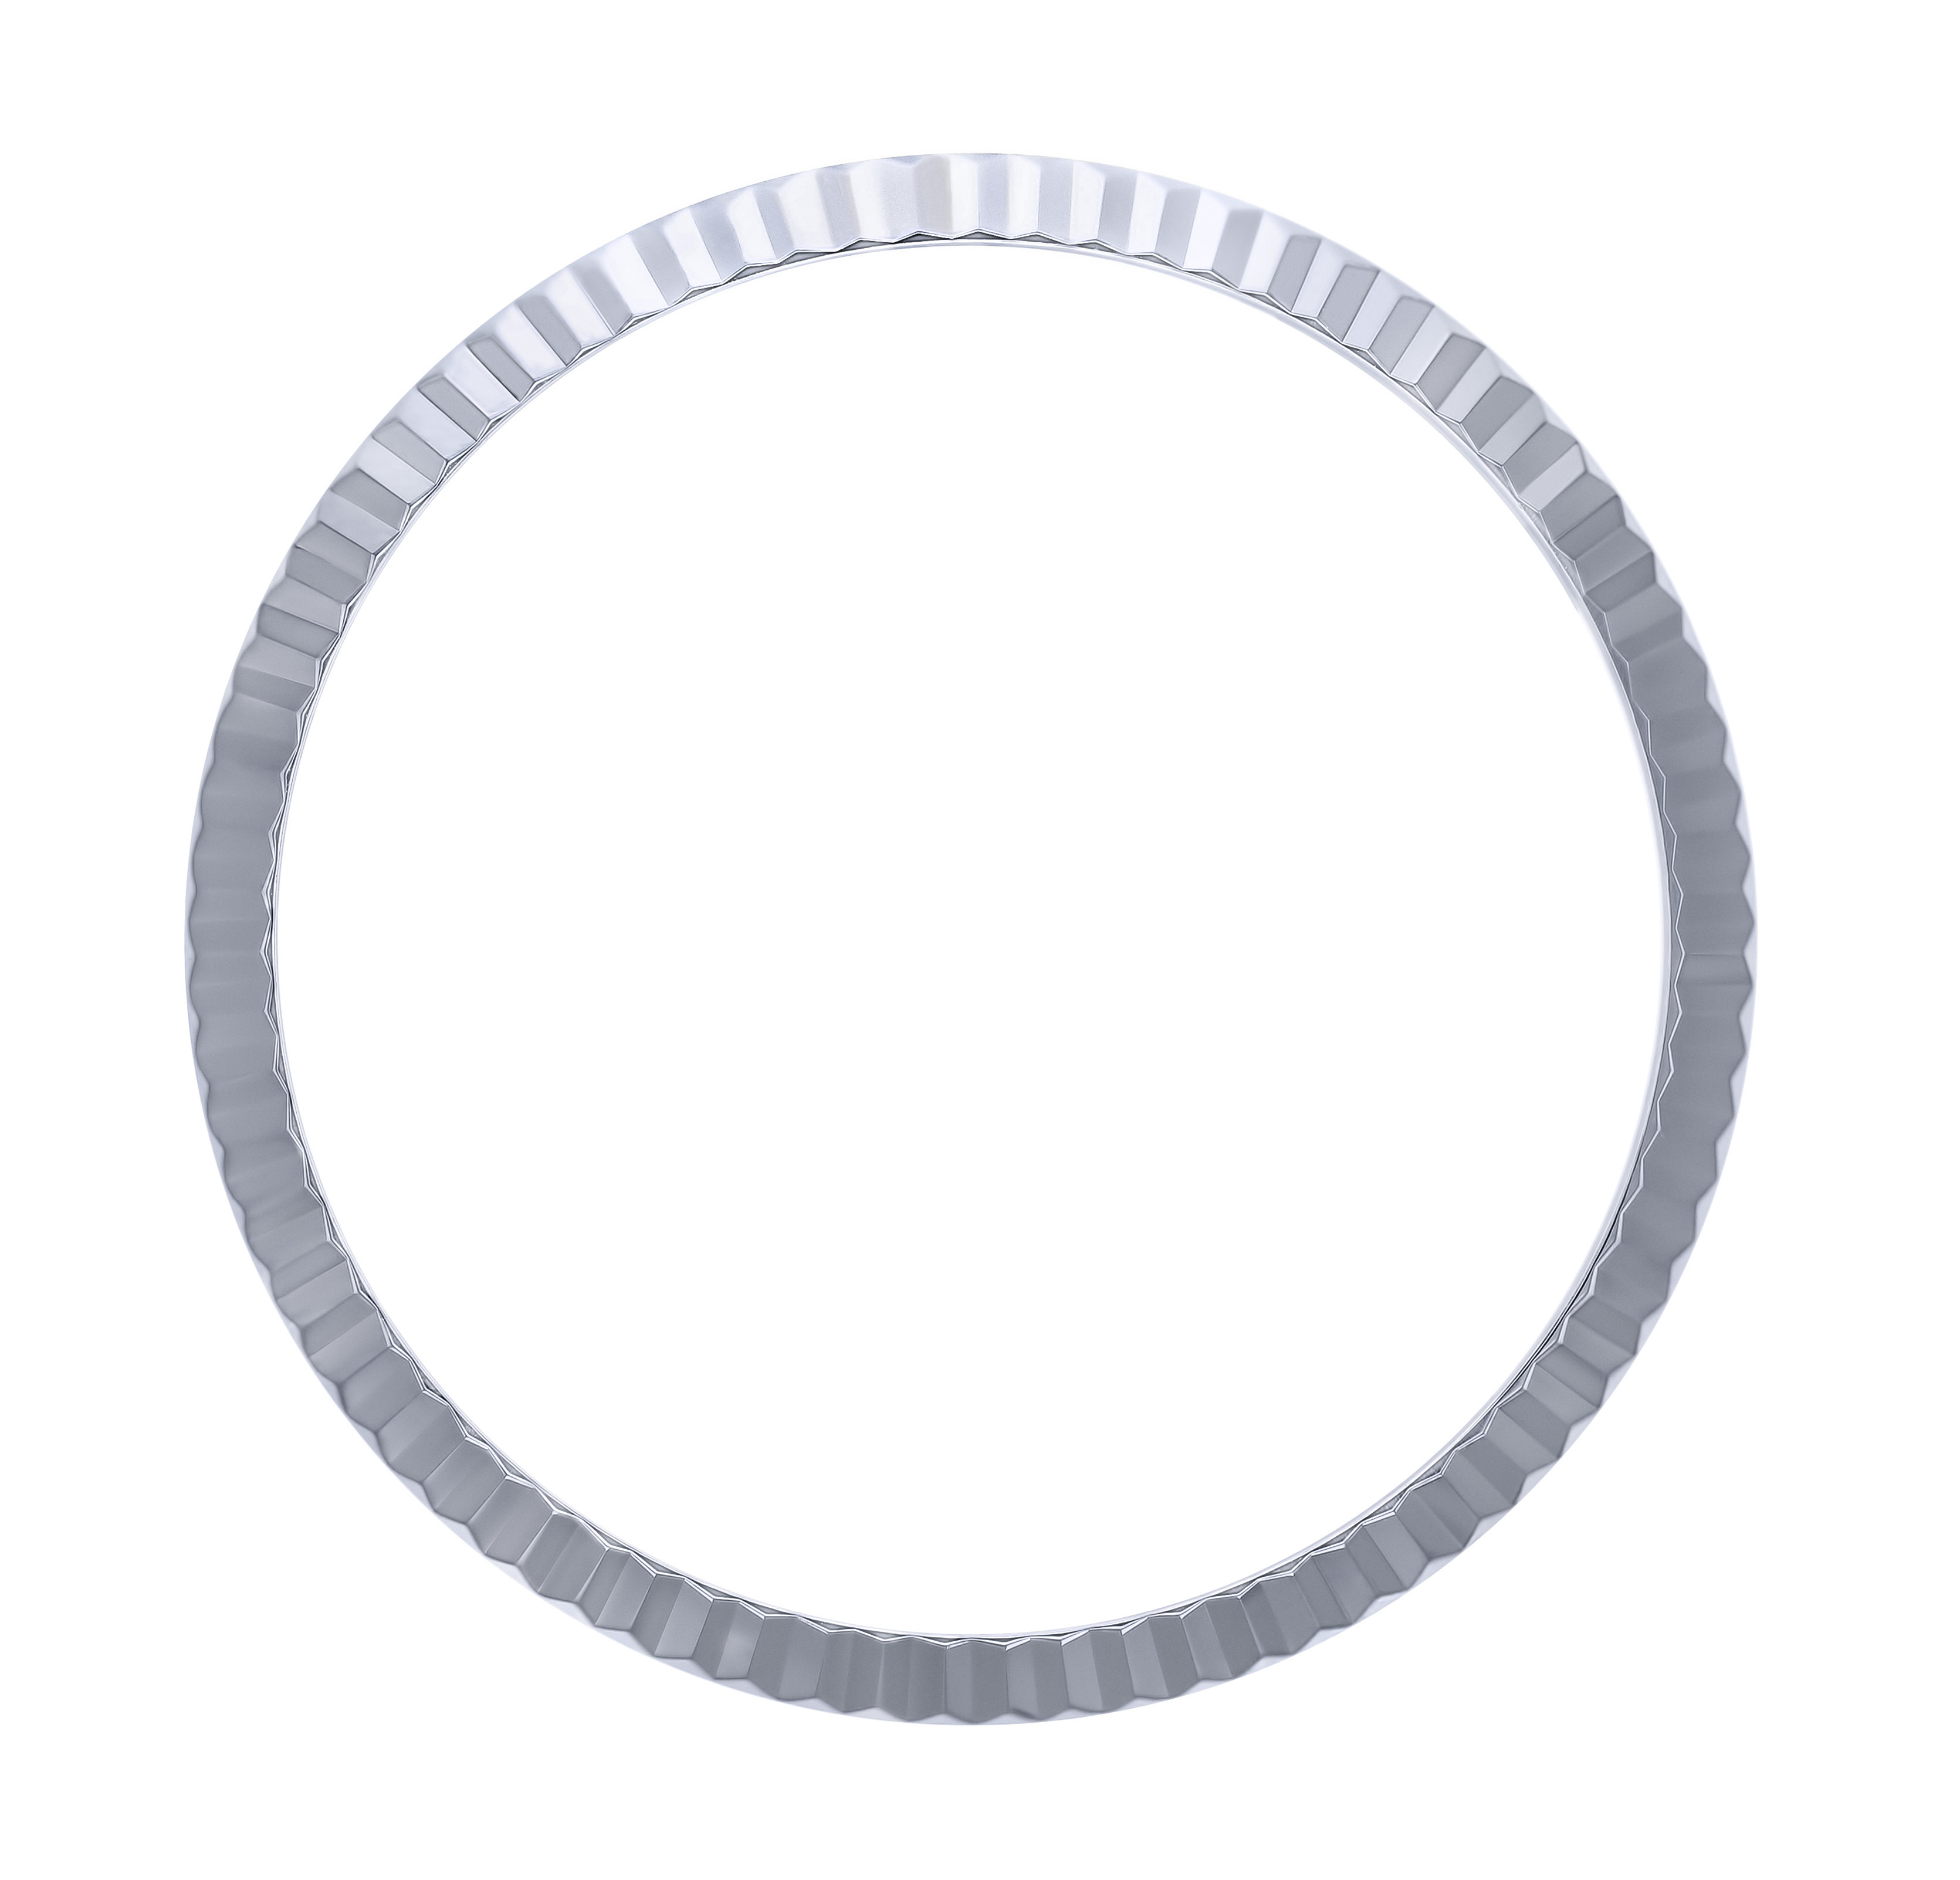 FLUTED BEZEL FOR 36MM ROLEX DATEJUST 116000 116200 116233 116234 18KW REAL GOLD